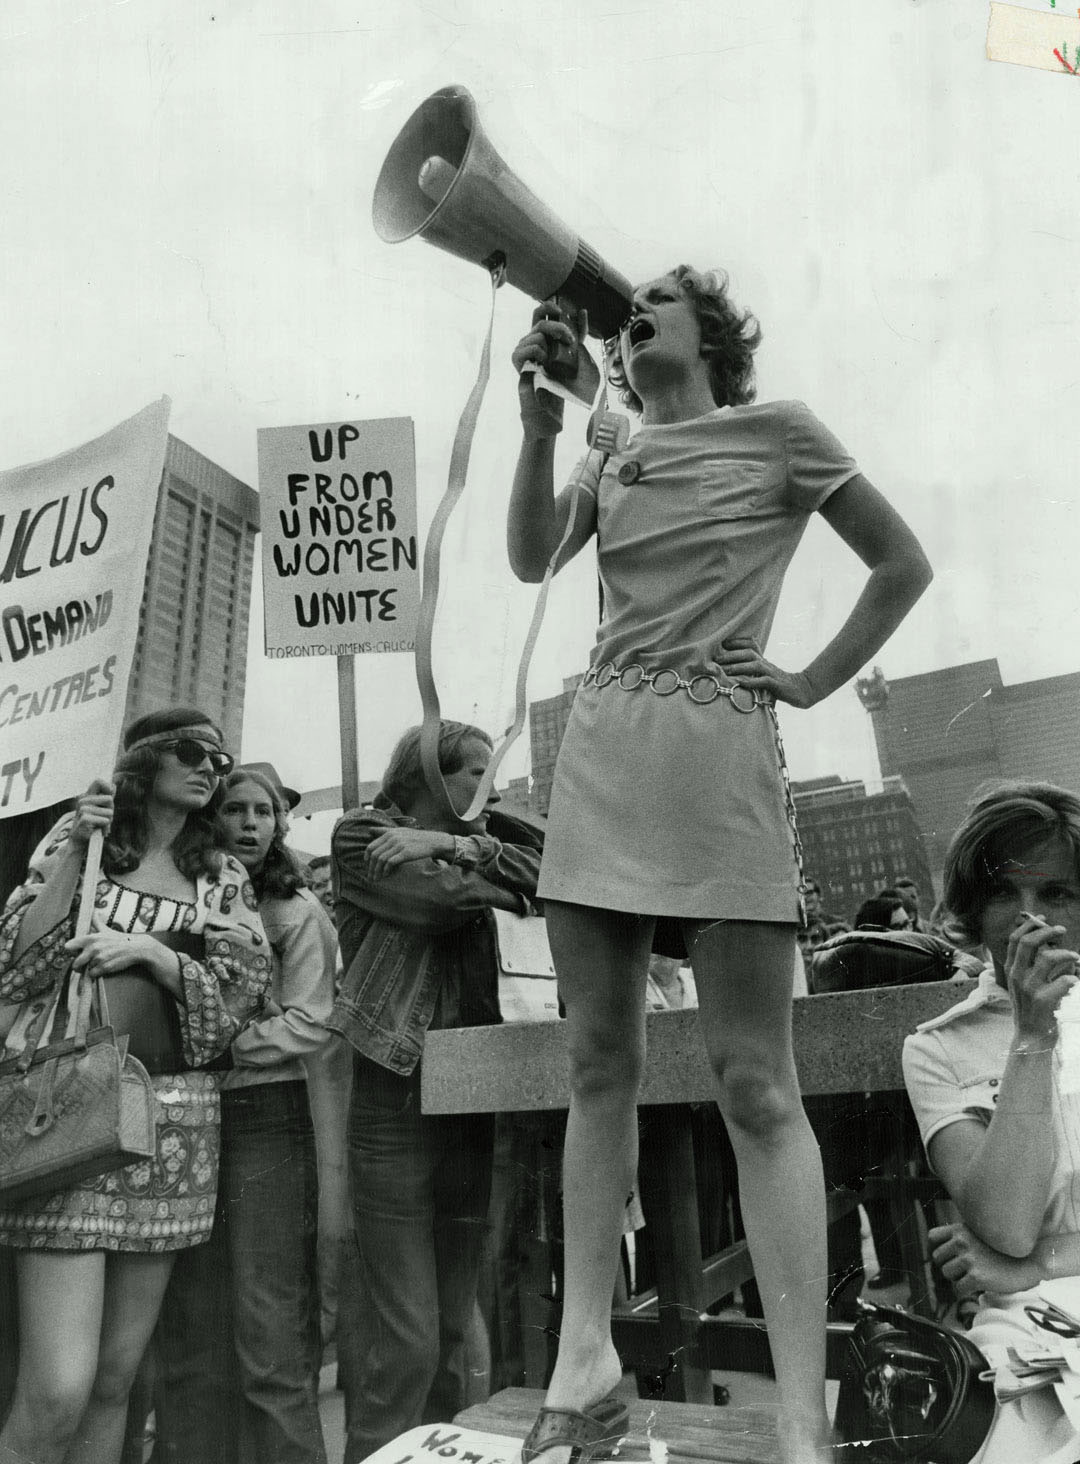 Up From Under Women Unite 1960s Feminist Protest